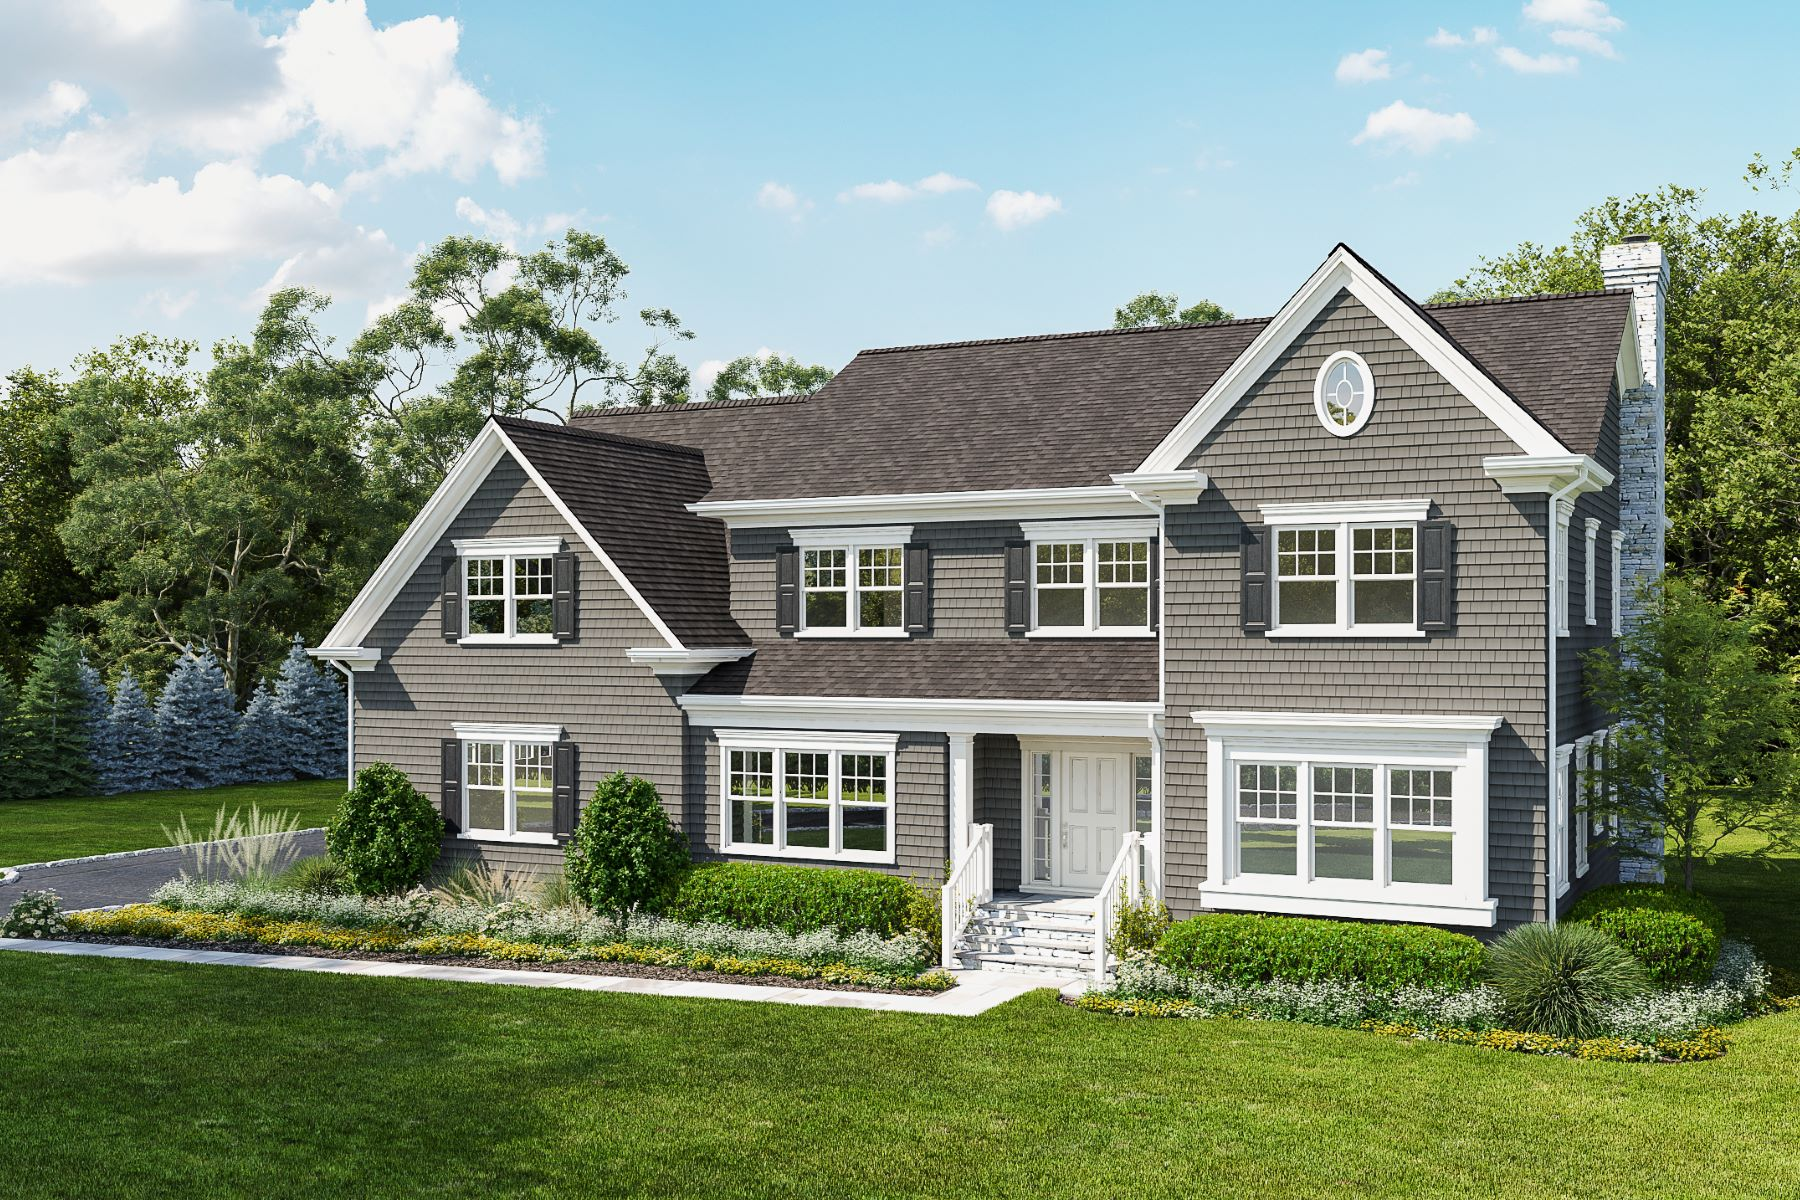 Single Family Homes for Active at 4 Richardson Lane Harrison, New York 10528 United States